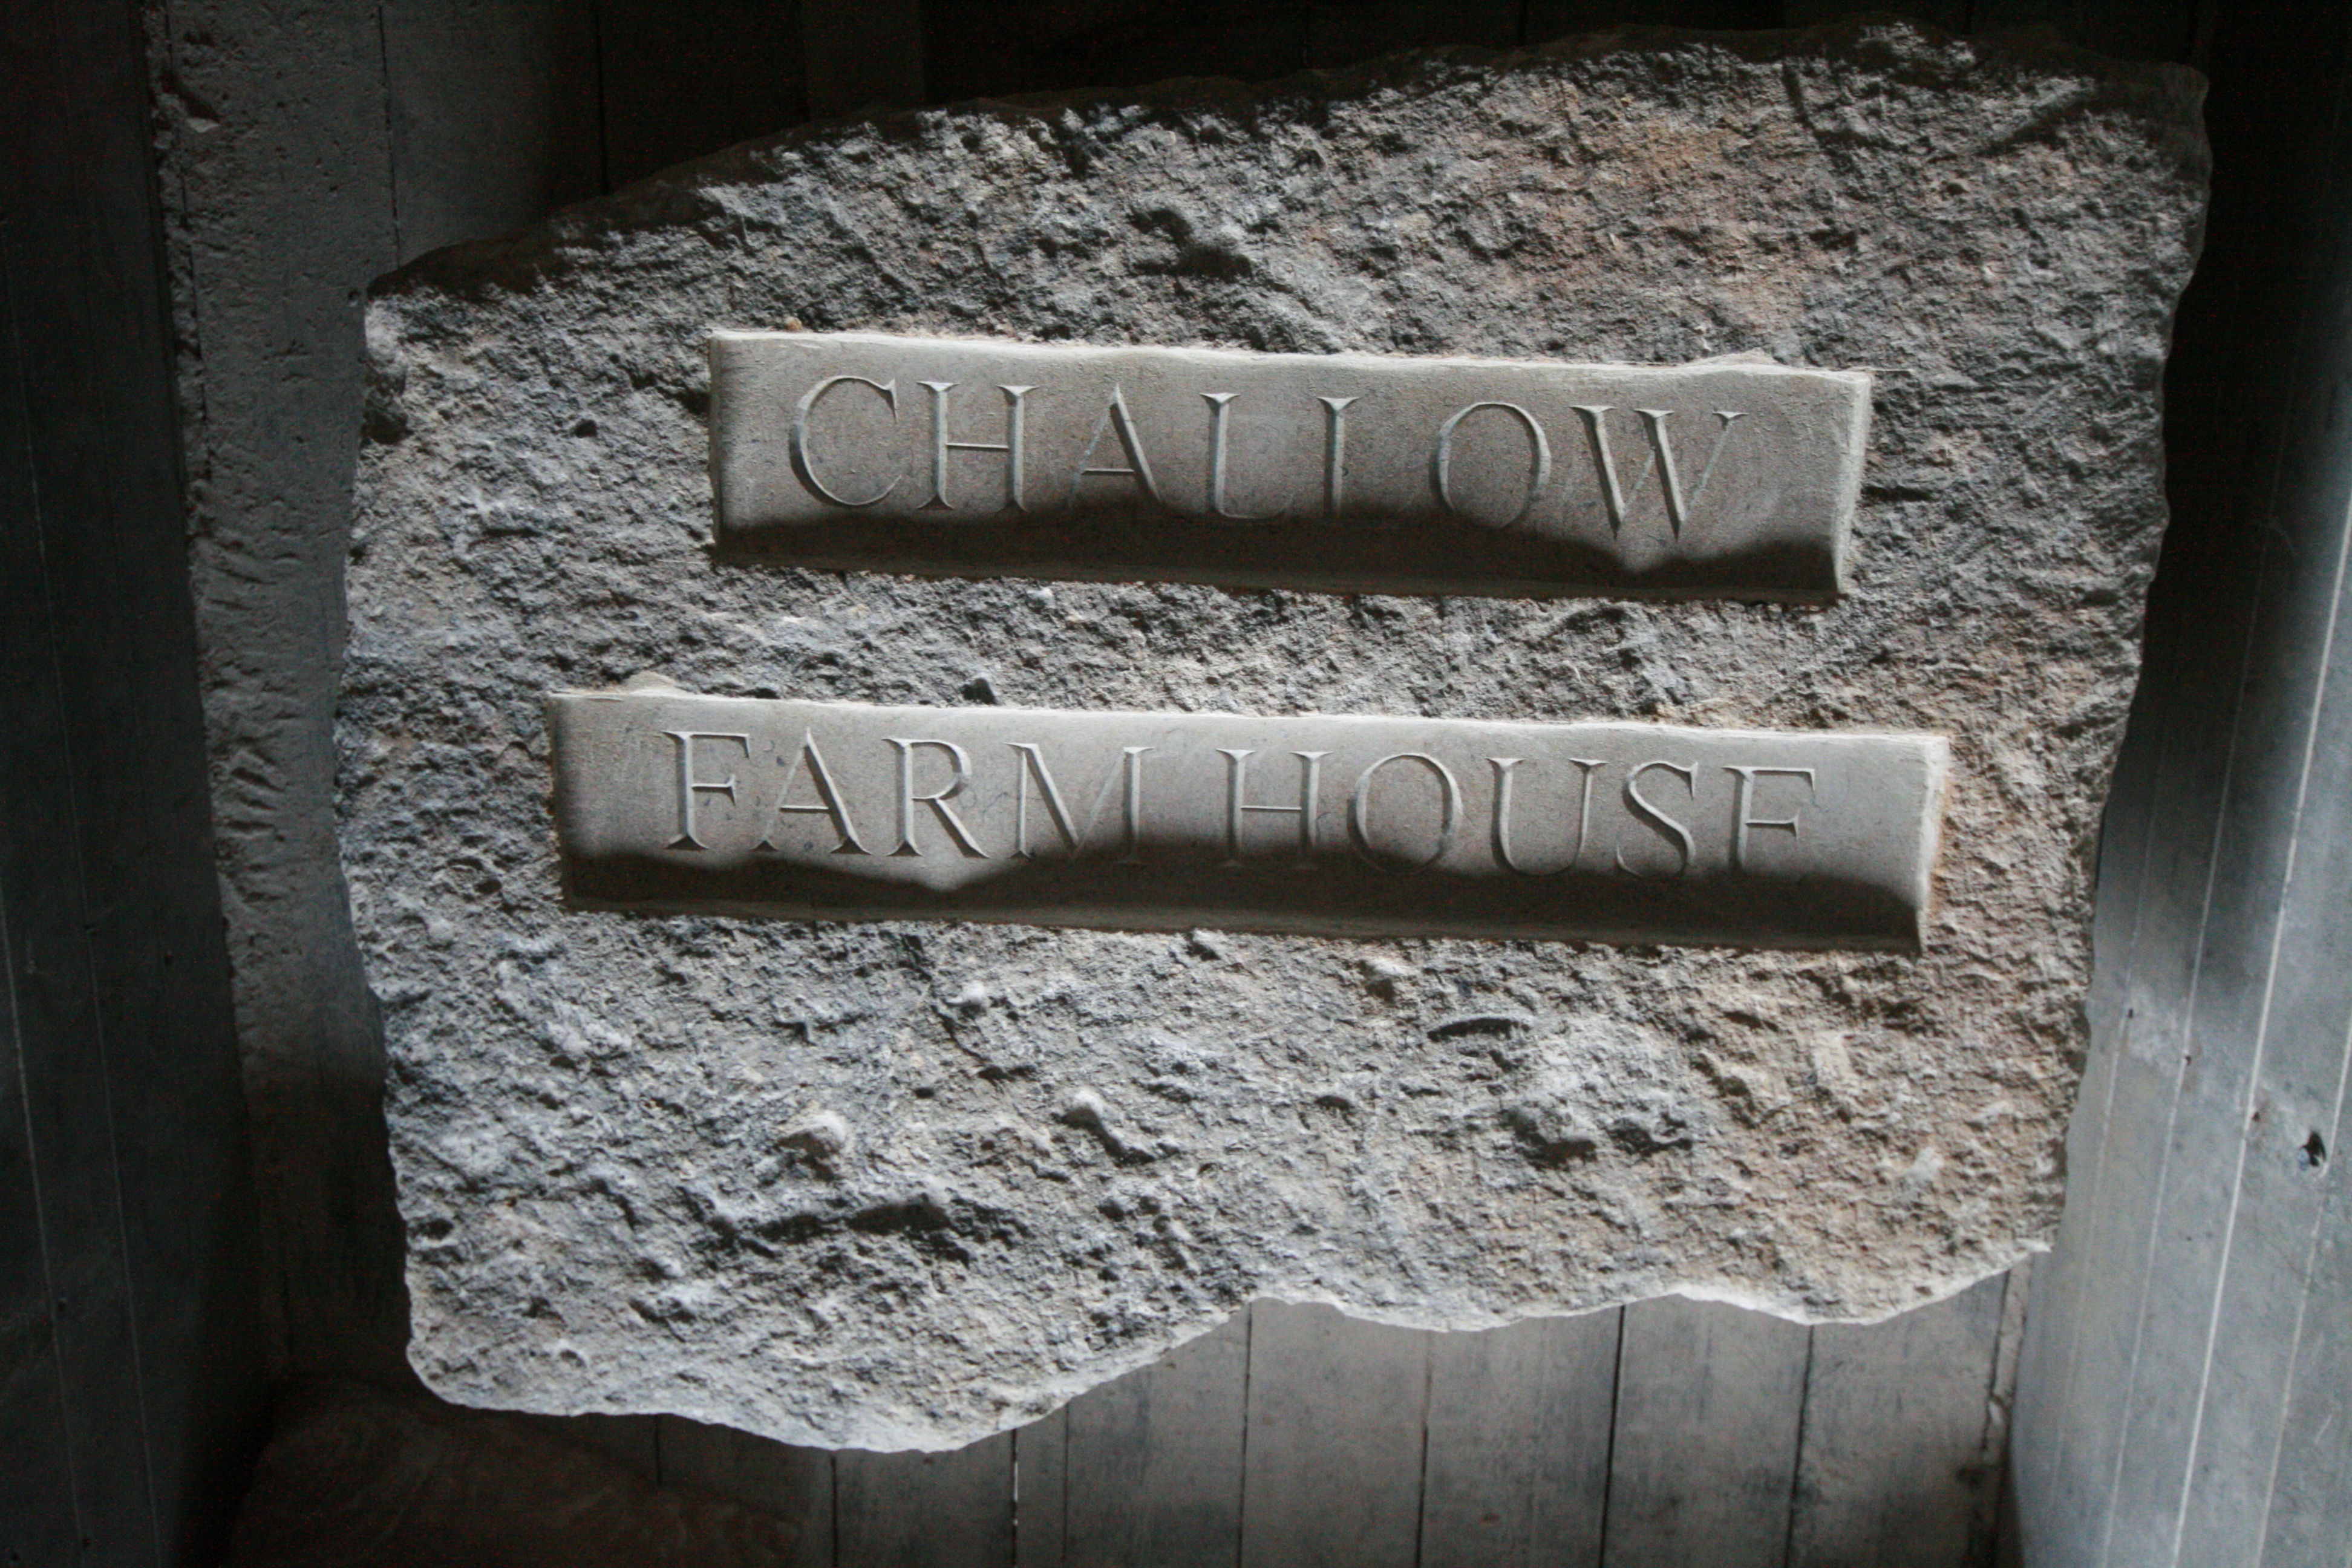 'Challow Farm House' - carved letters